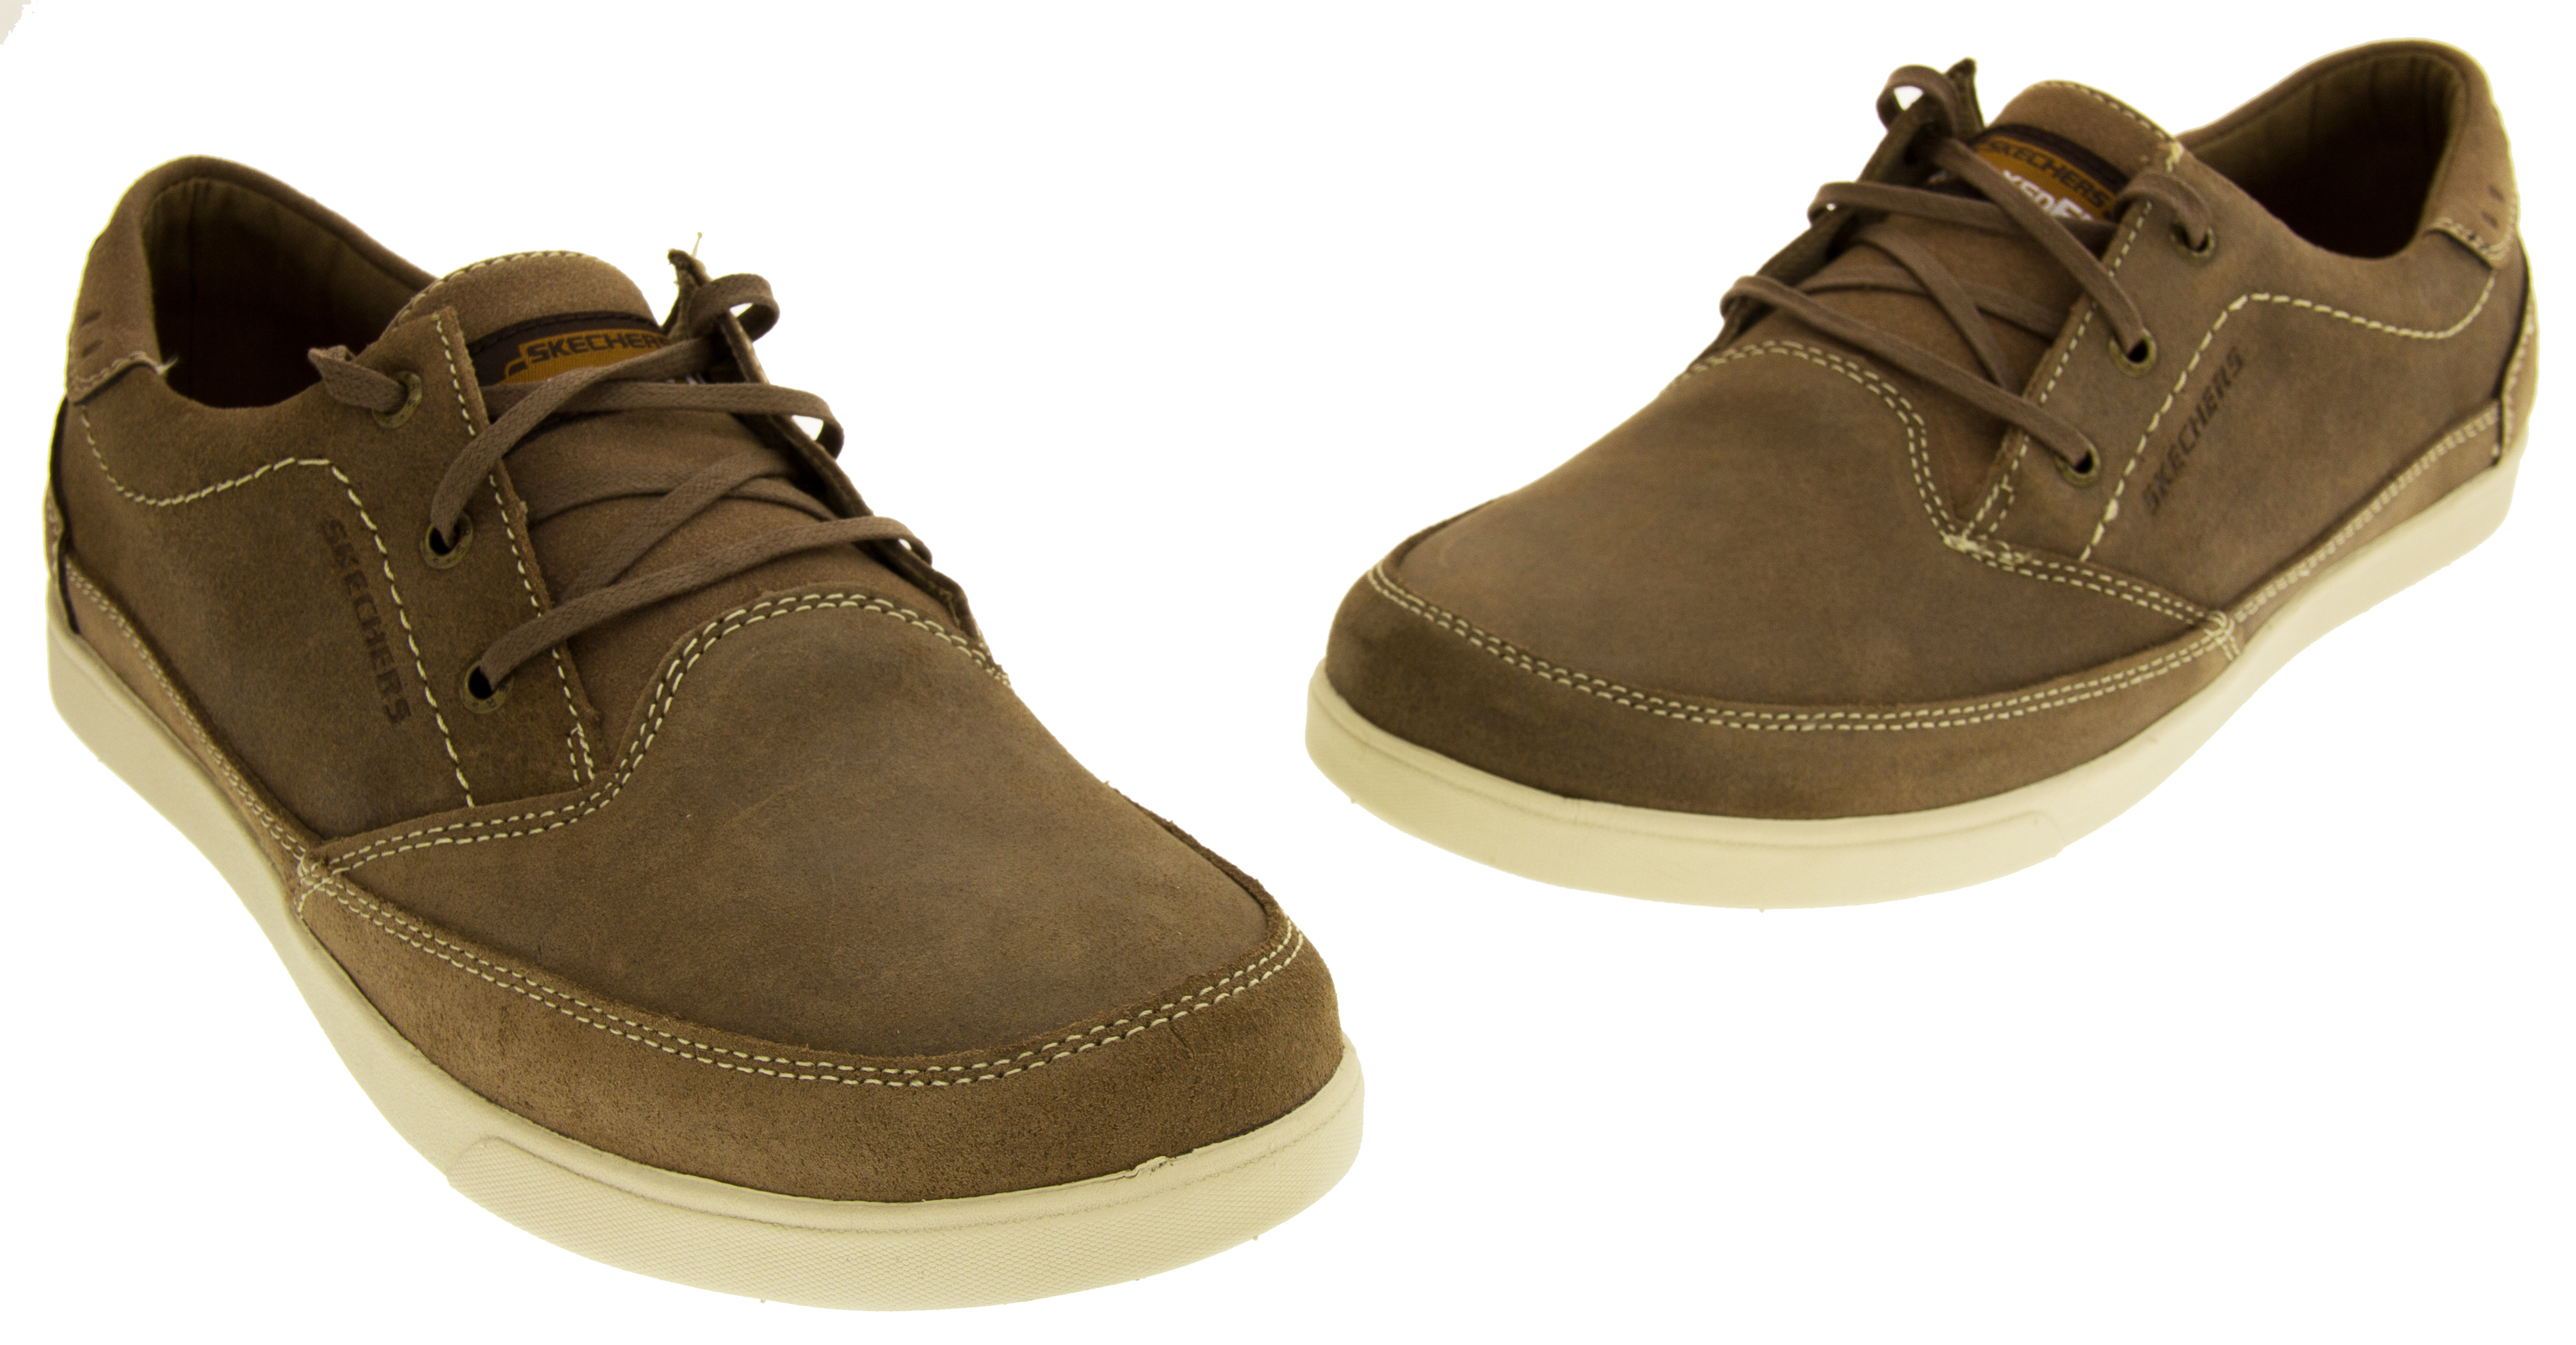 skechers relaxed fit memory foam mens. mens skechers real suede leather casual shoes memory foam relaxed fit trainers ;